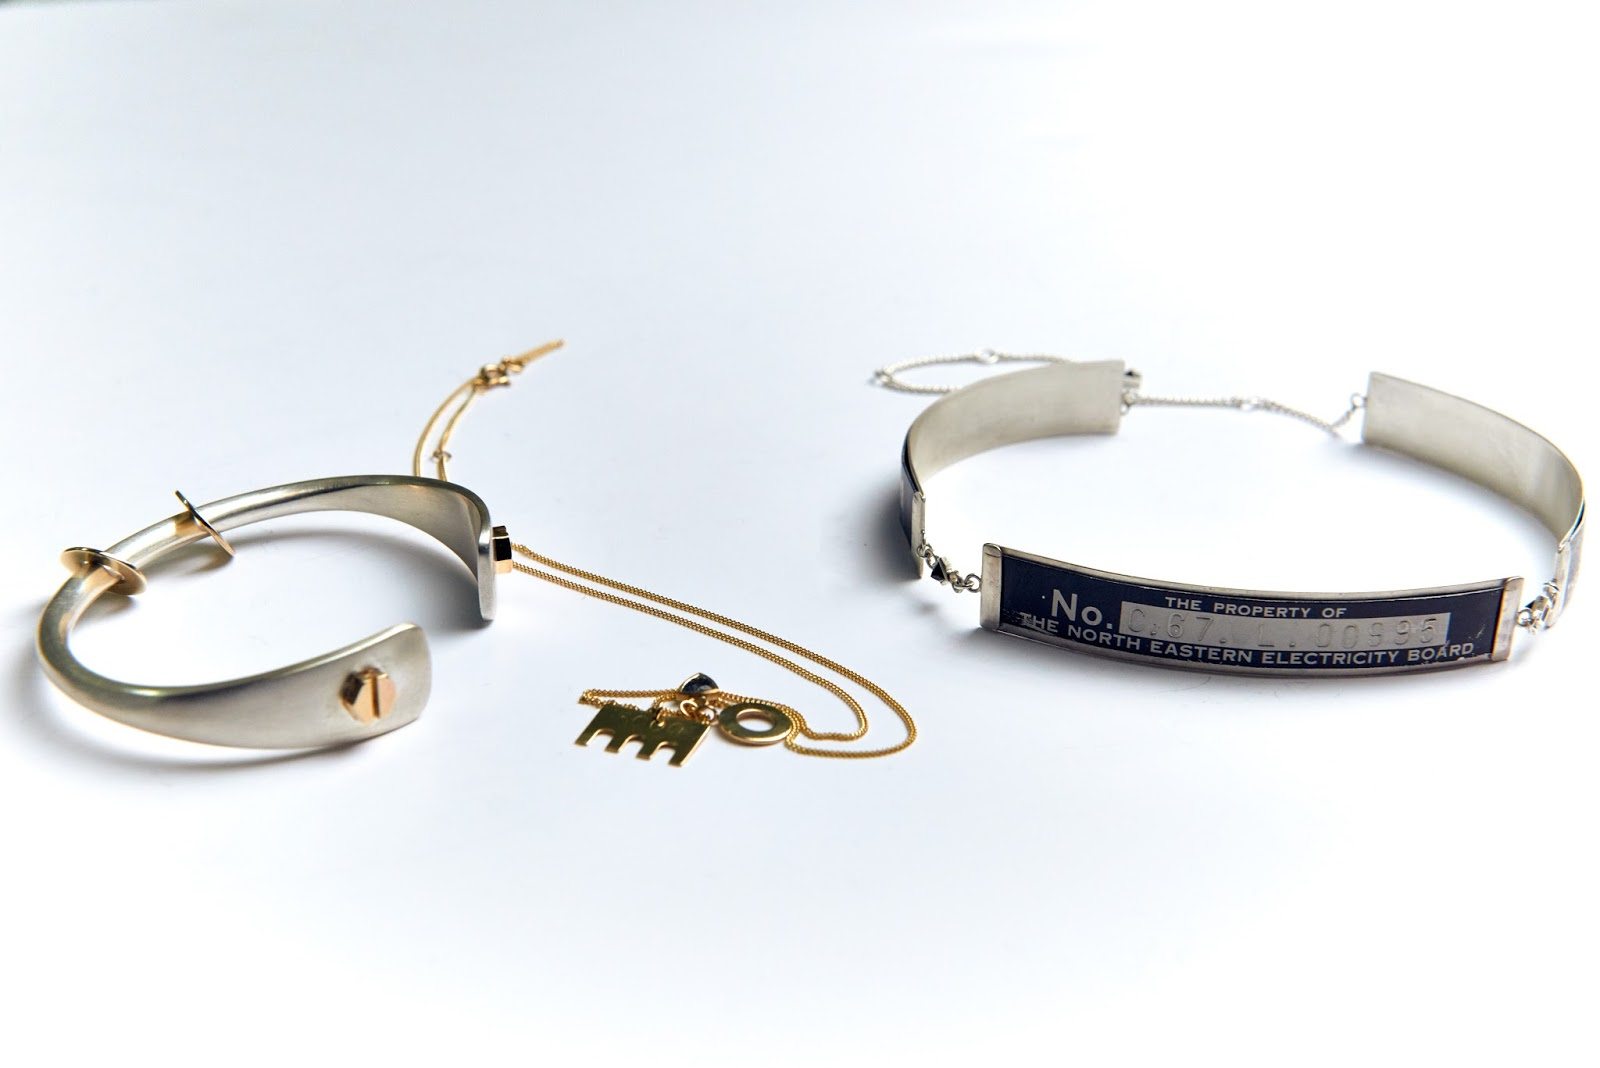 Kat Clark Smart Meter jewellery design